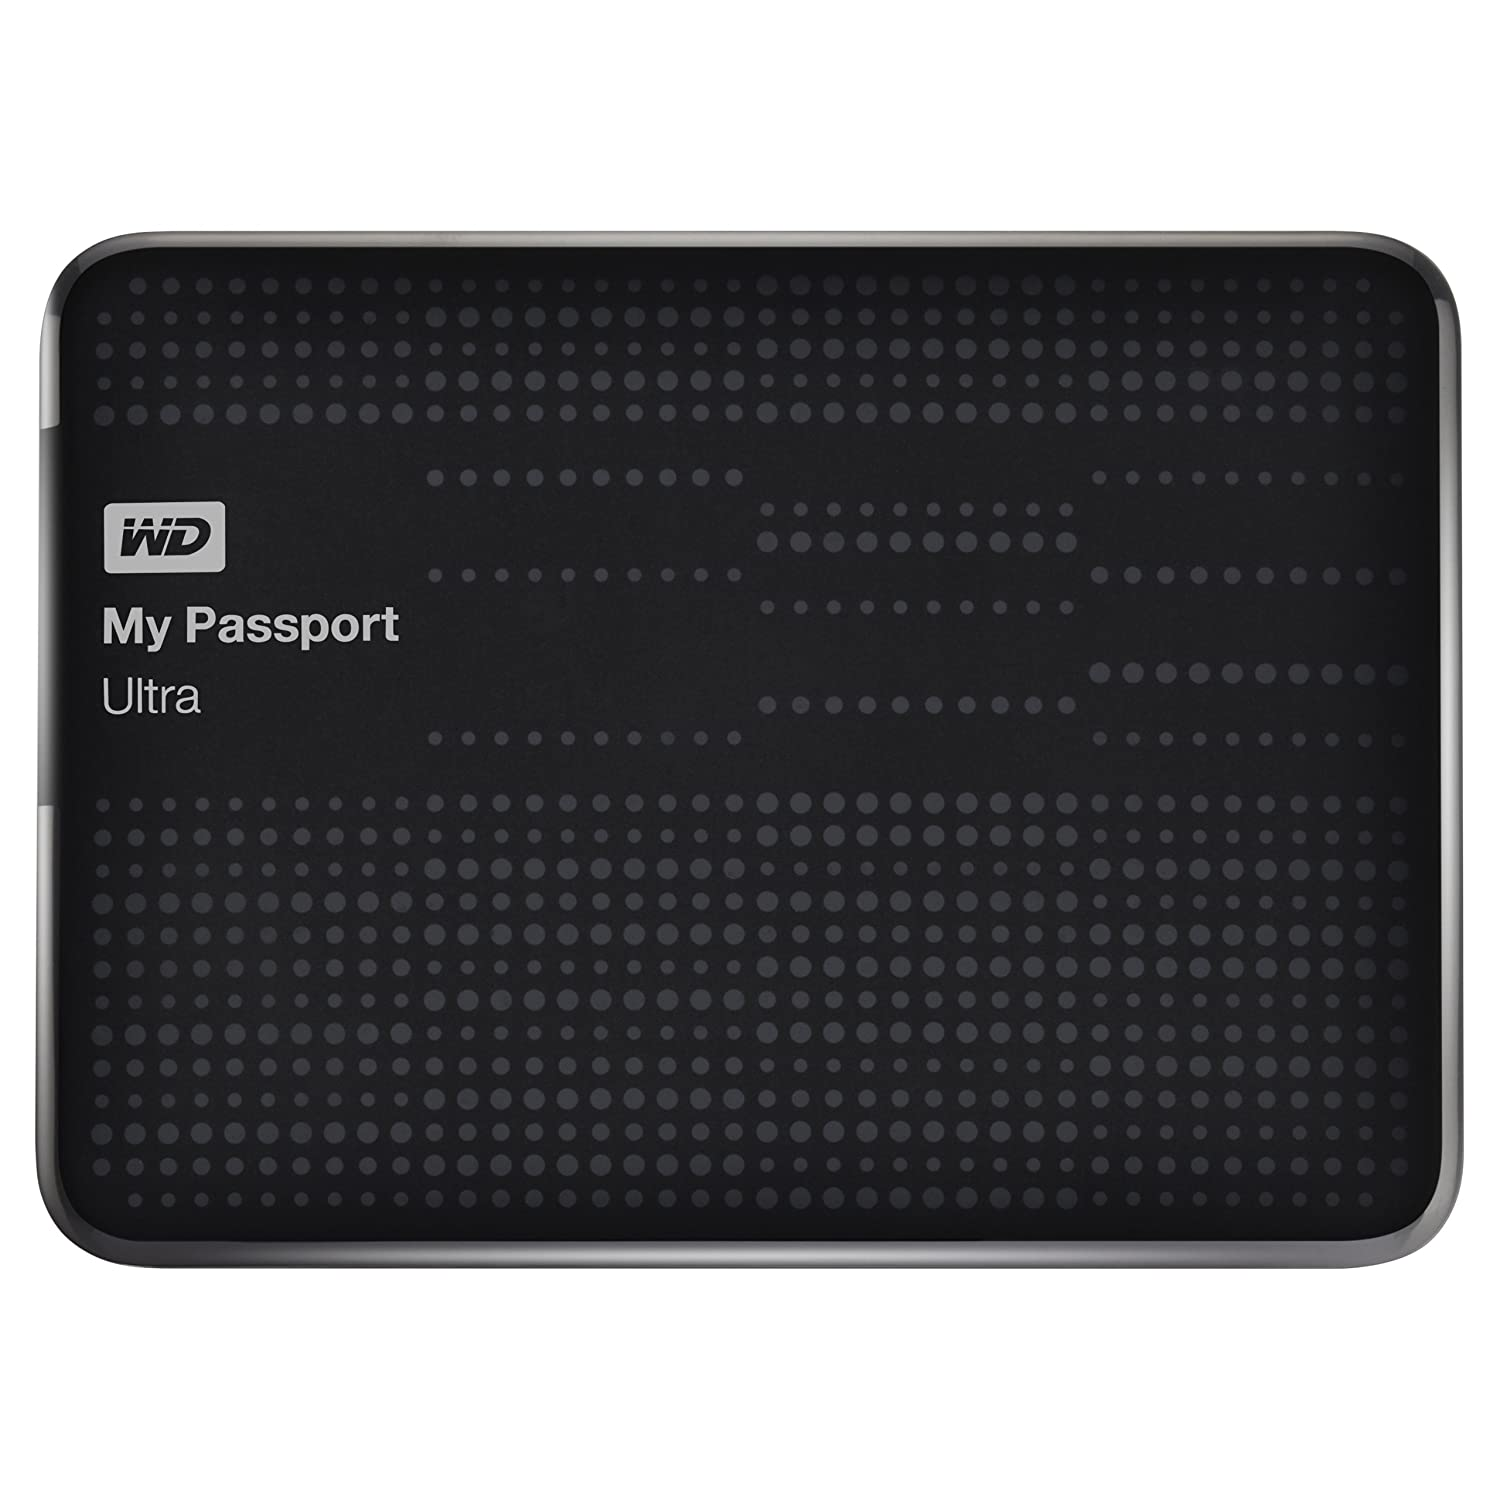 WD My Passport Ultra 1TB Portable External Hard Drive Black